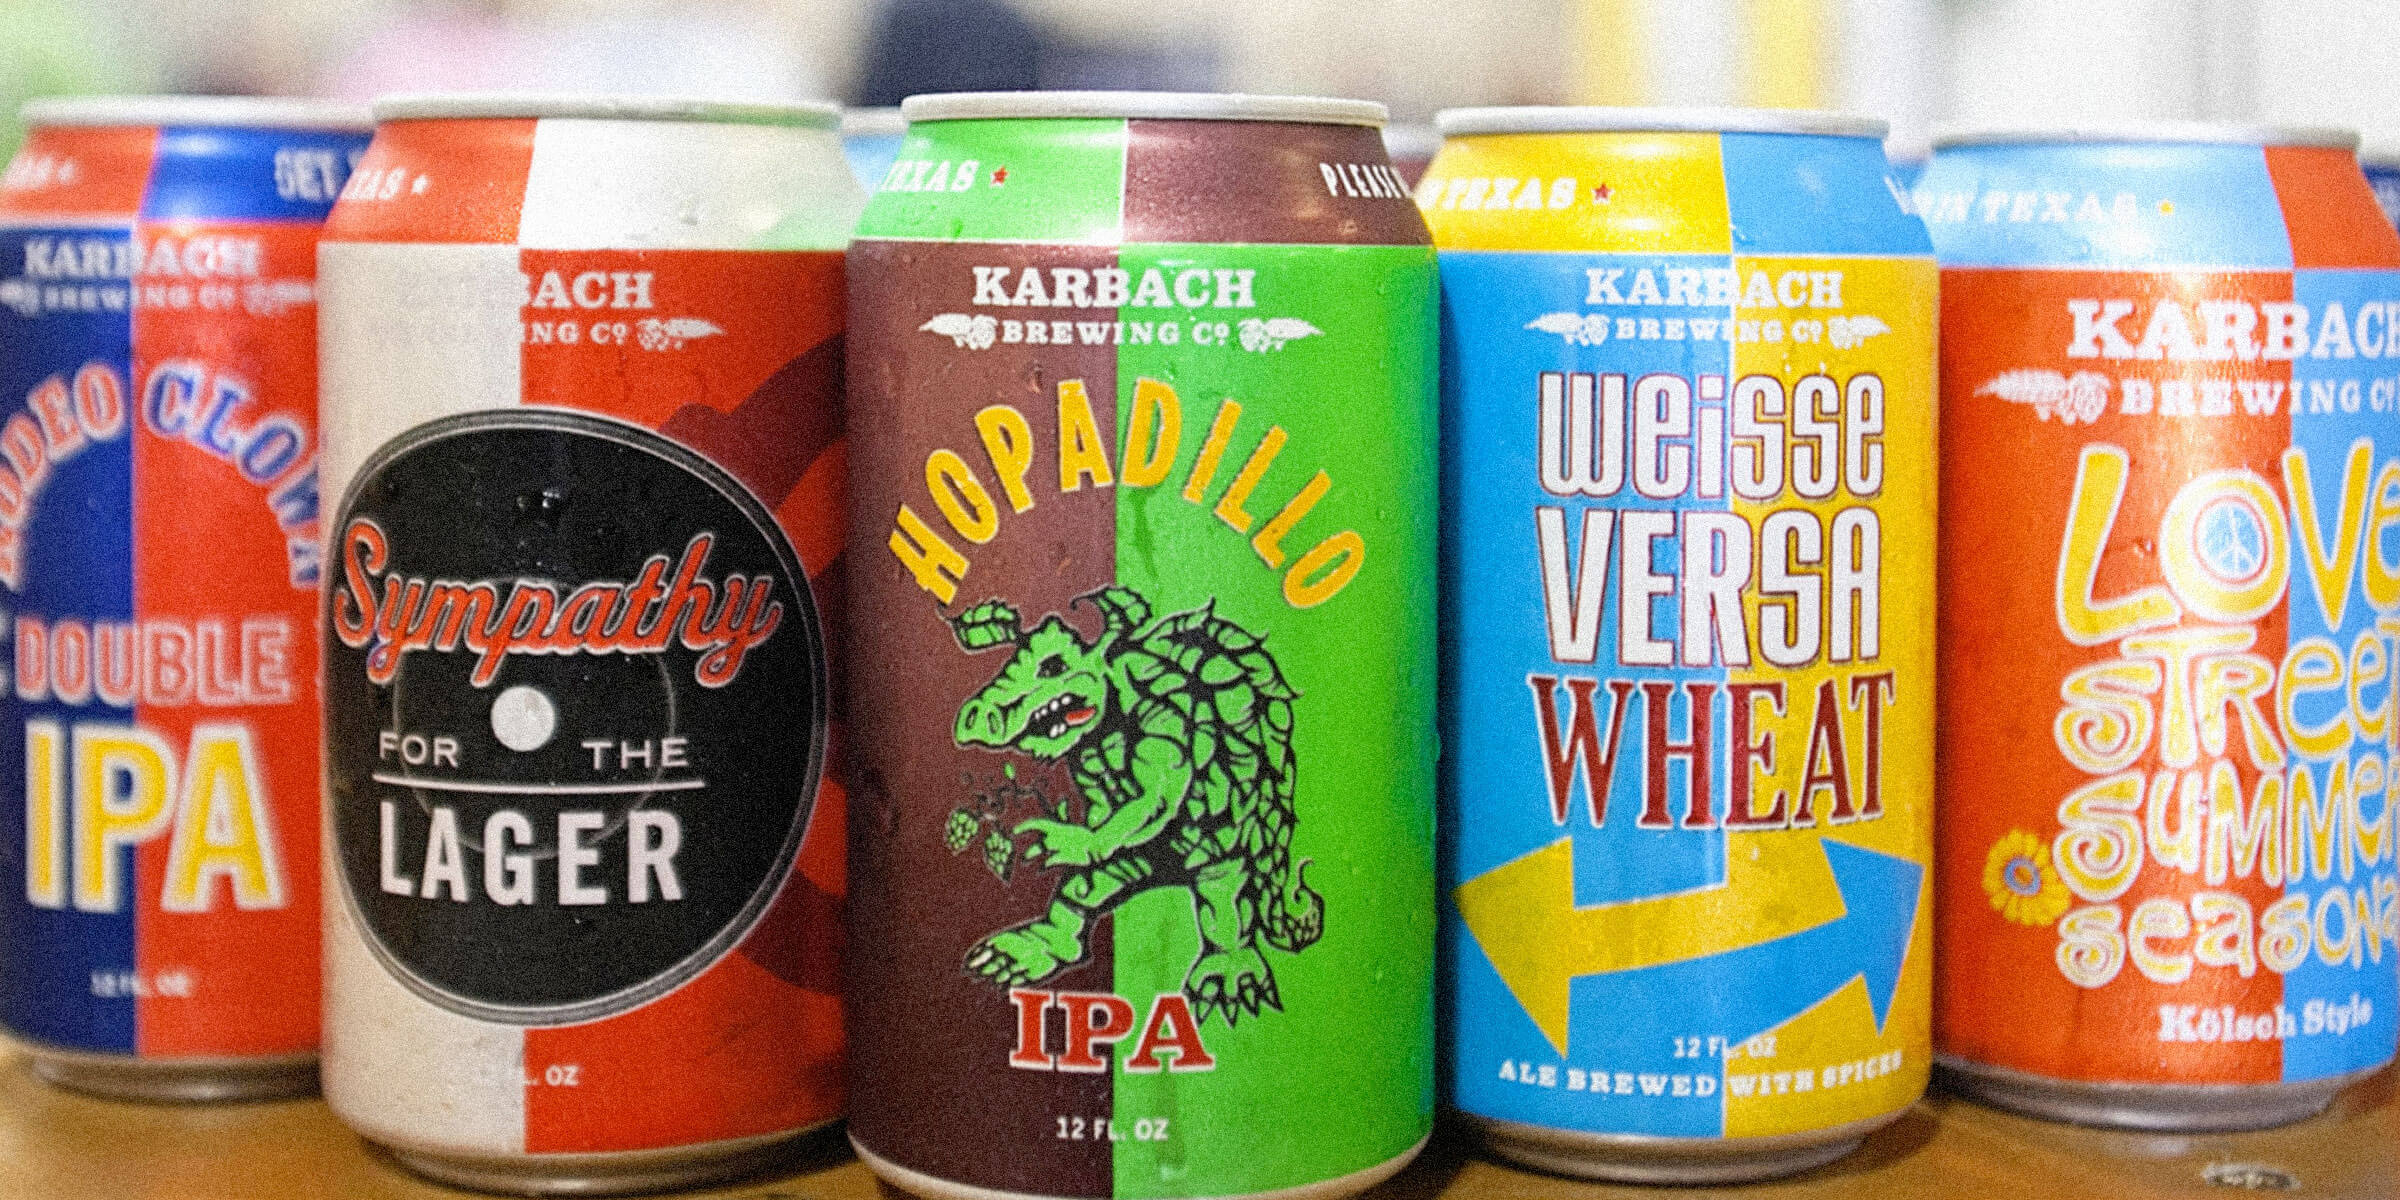 A lineup of canned beers from Karbach Brewing Co.